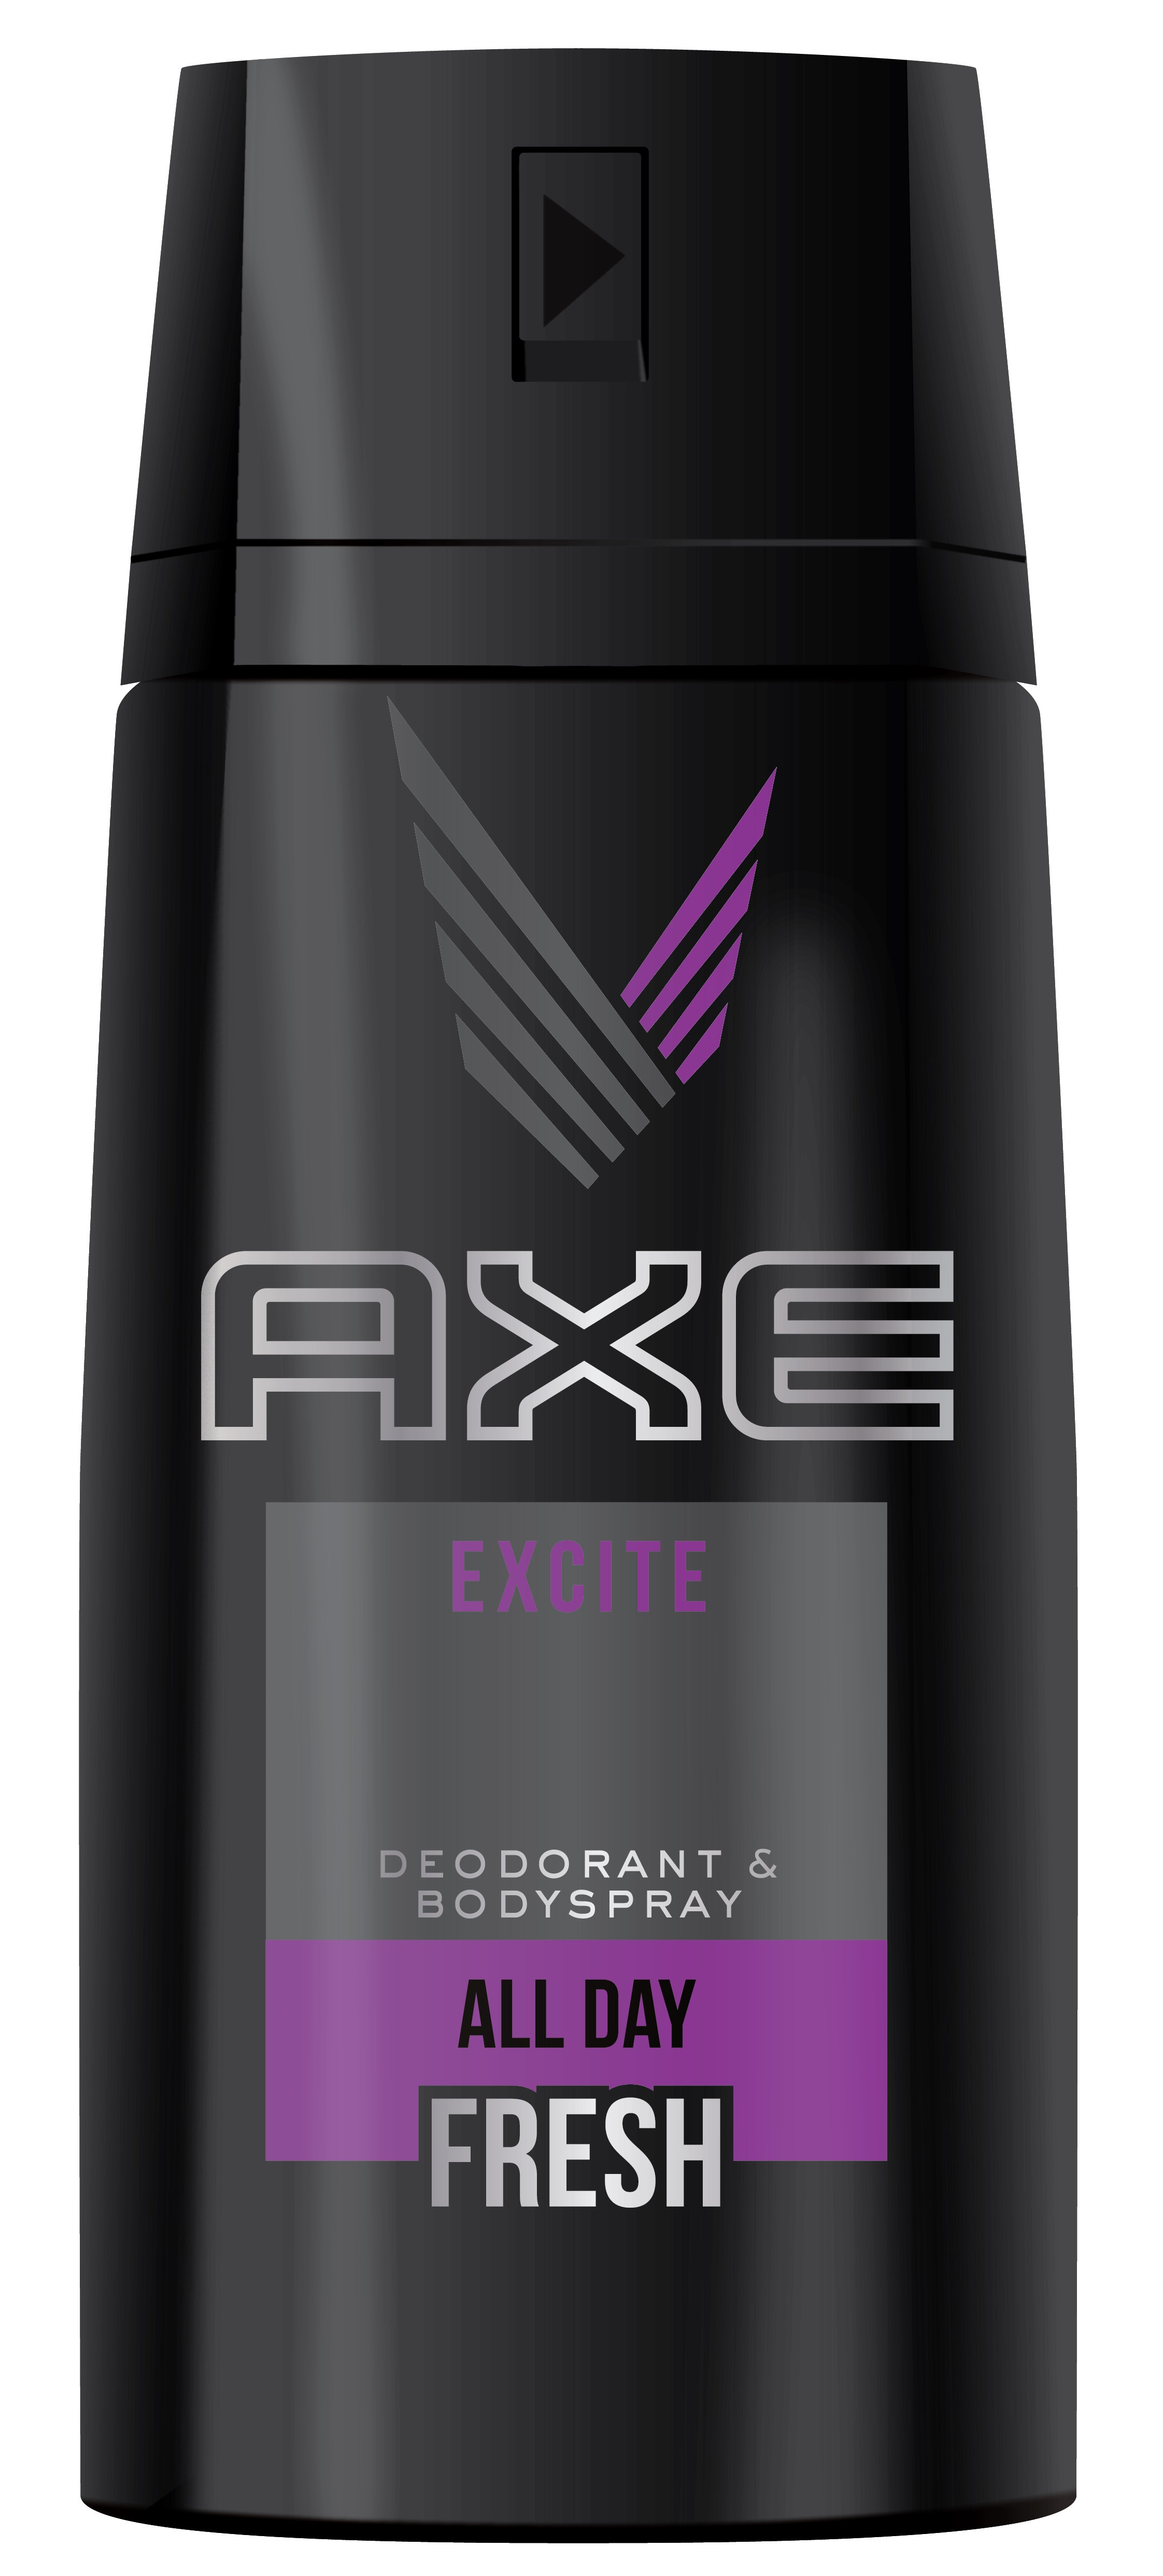 Axe Deodorant Excite 150ml